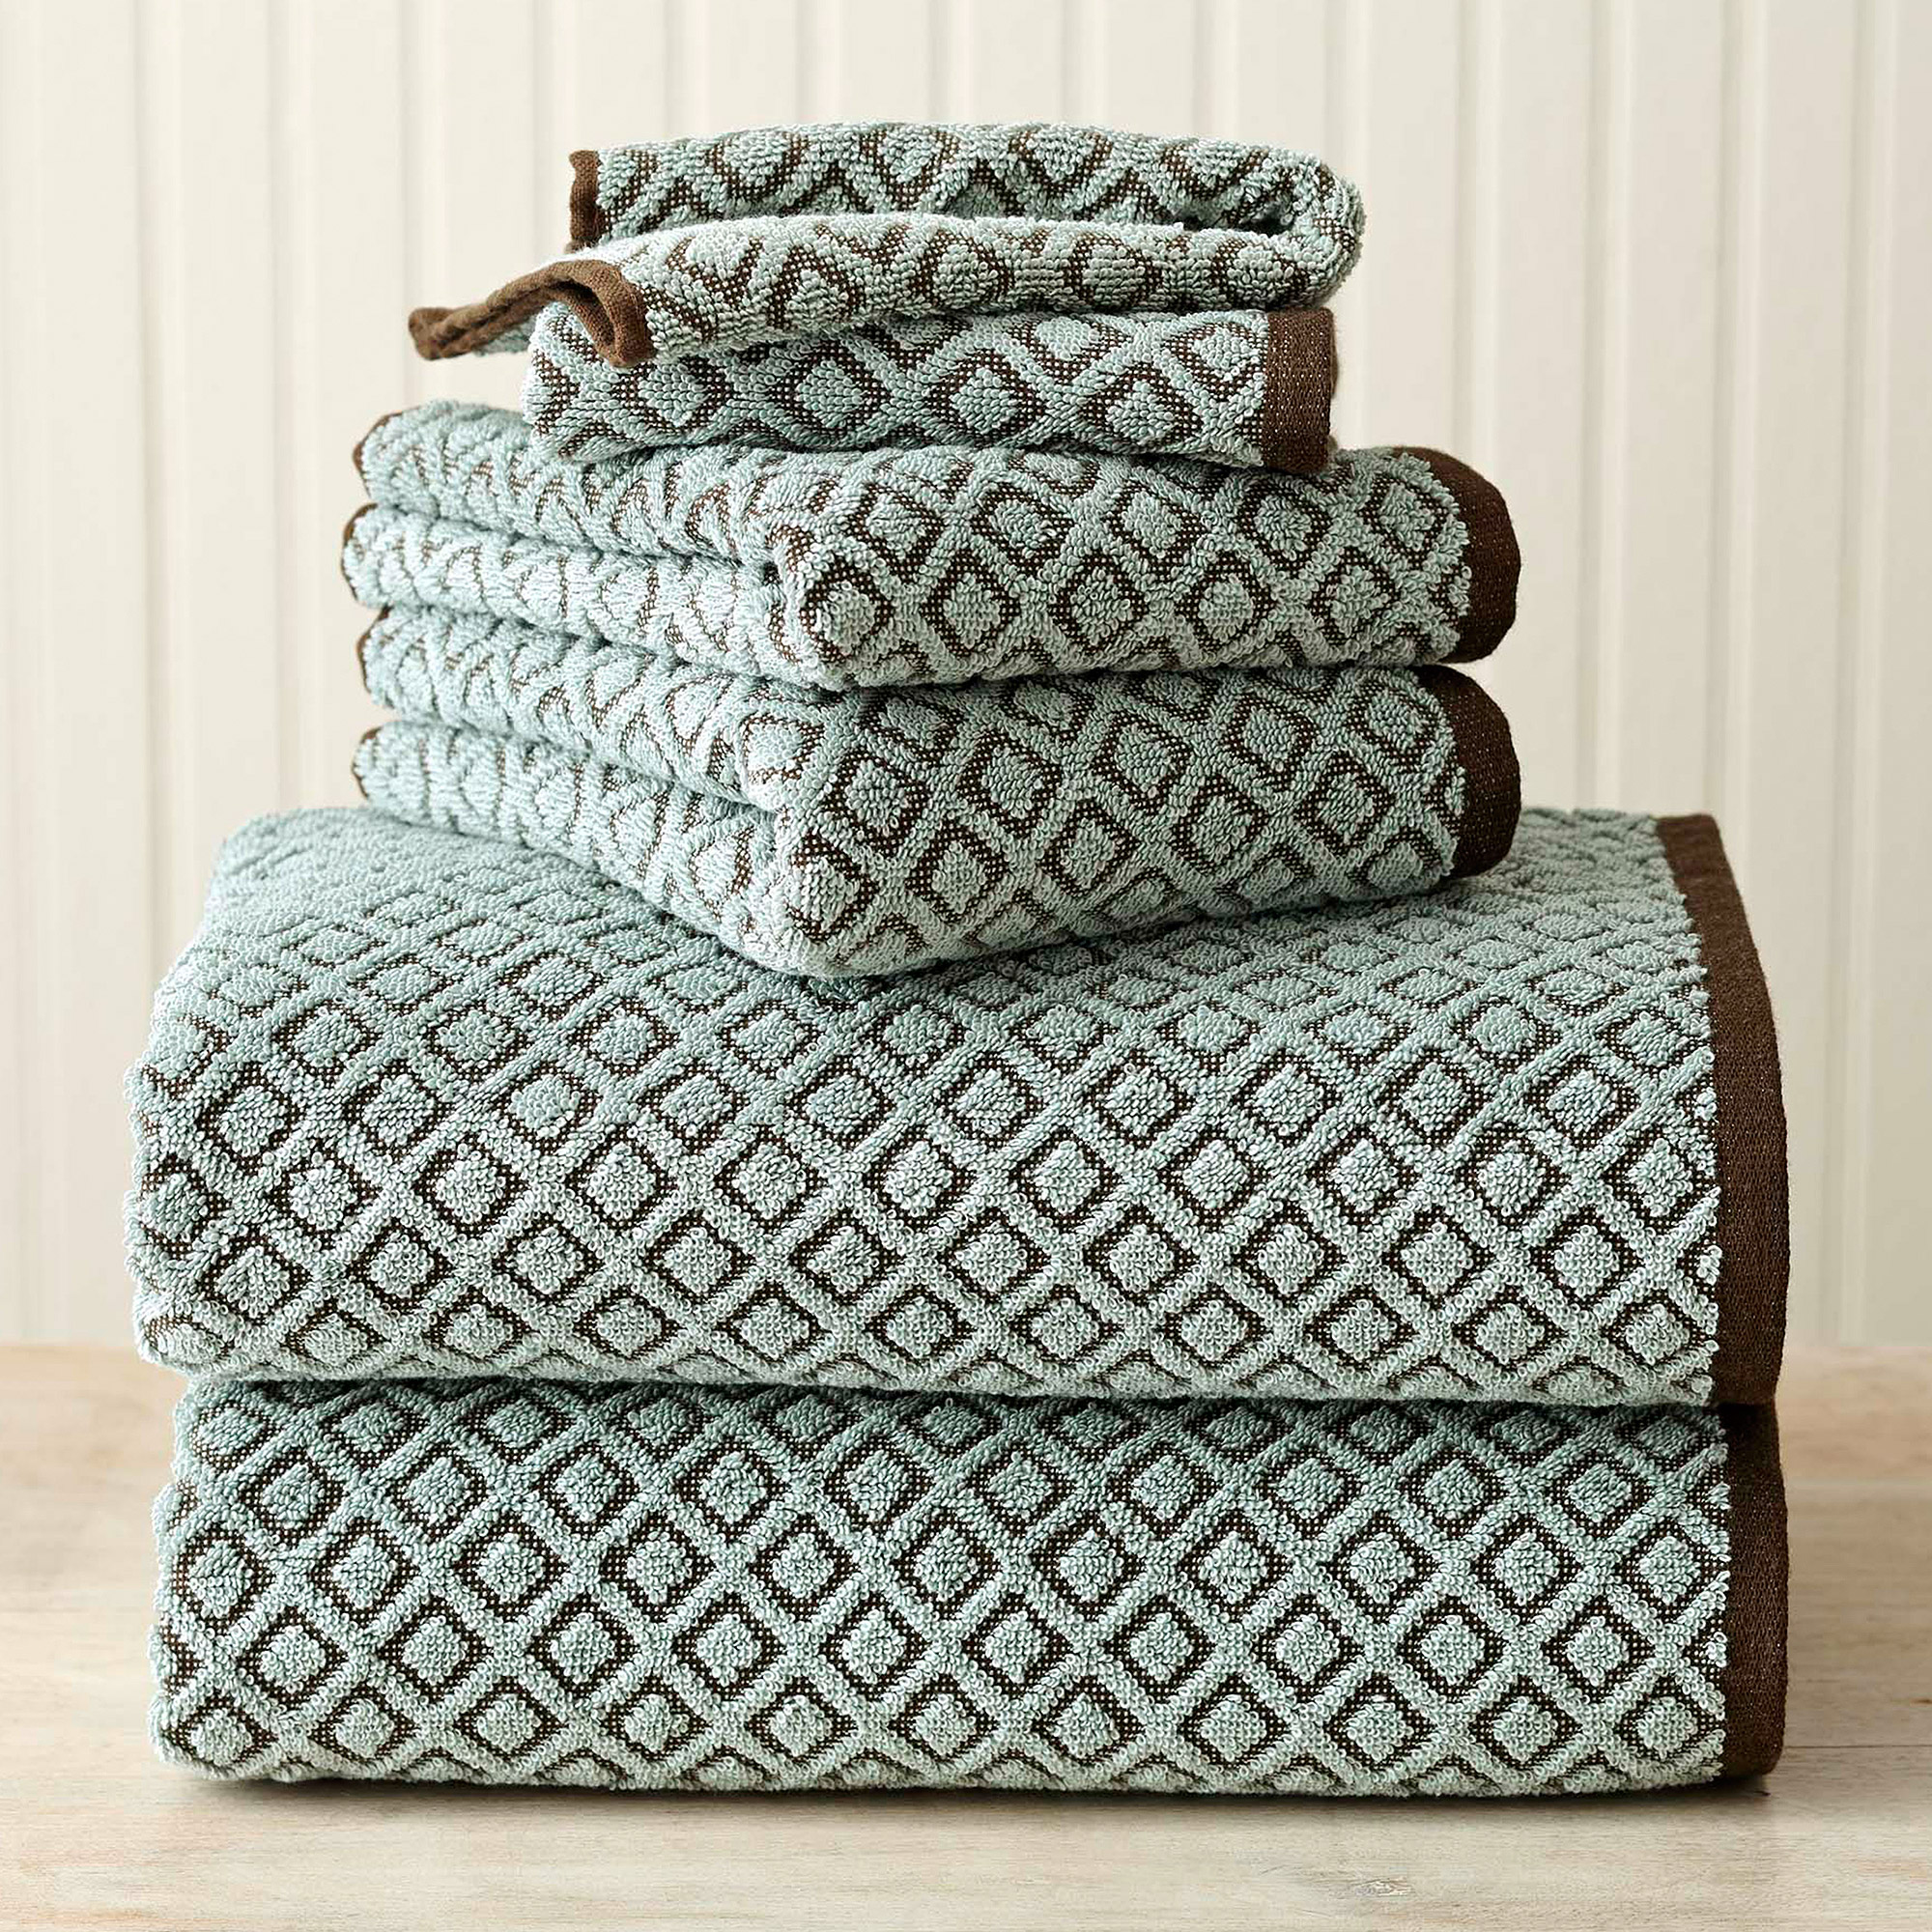 Better Homes and Gardens Kendo Extra Absorbent 6-Piece Towel Set